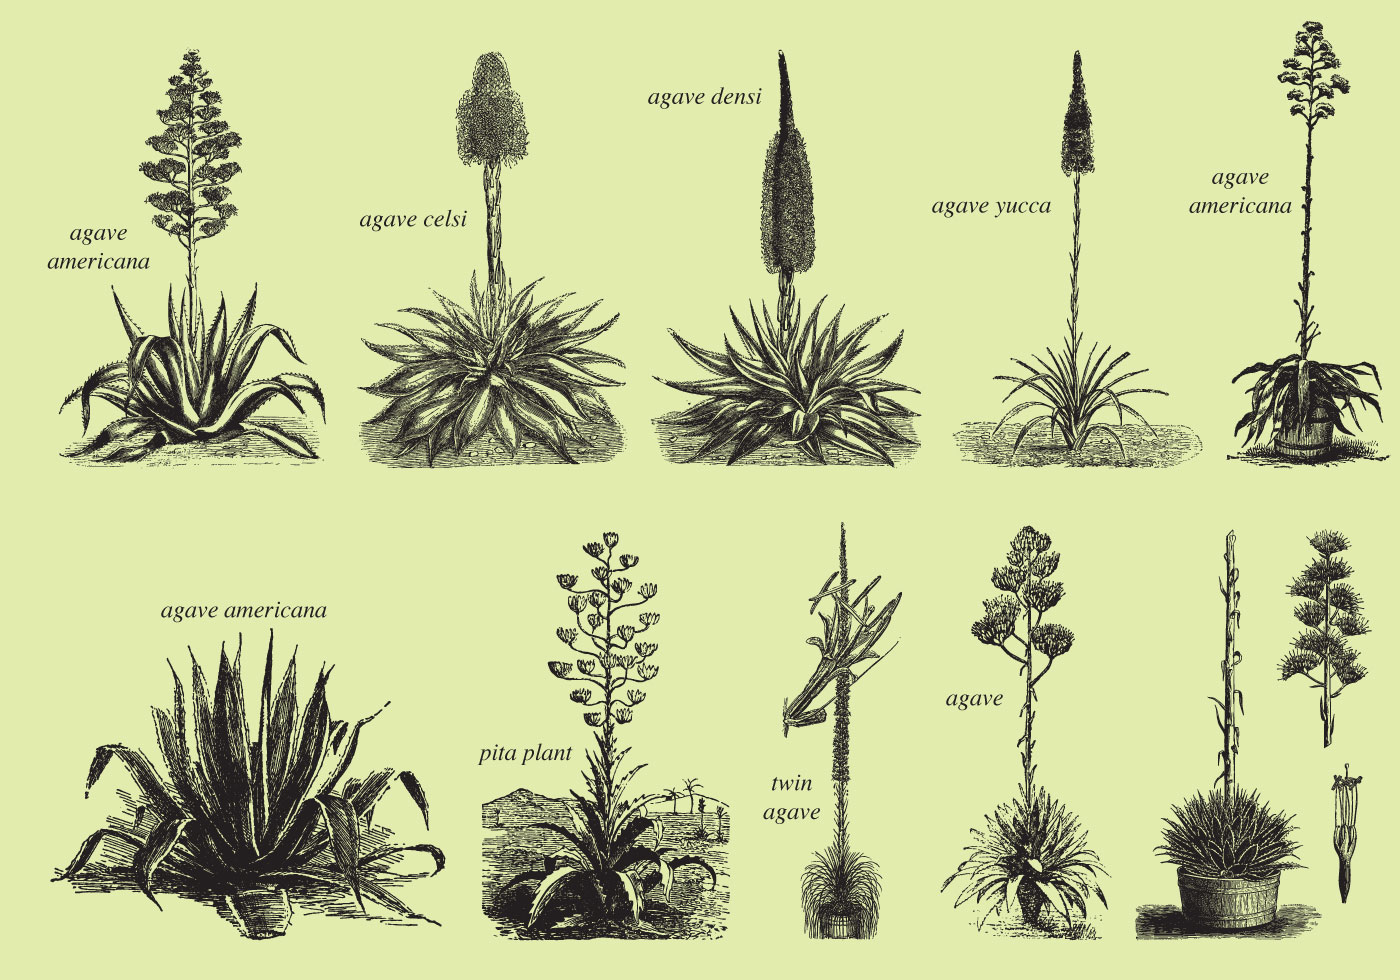 agave and maguey drawings download free vector art flower garden clip art free Free Vintage Clip Art Flower